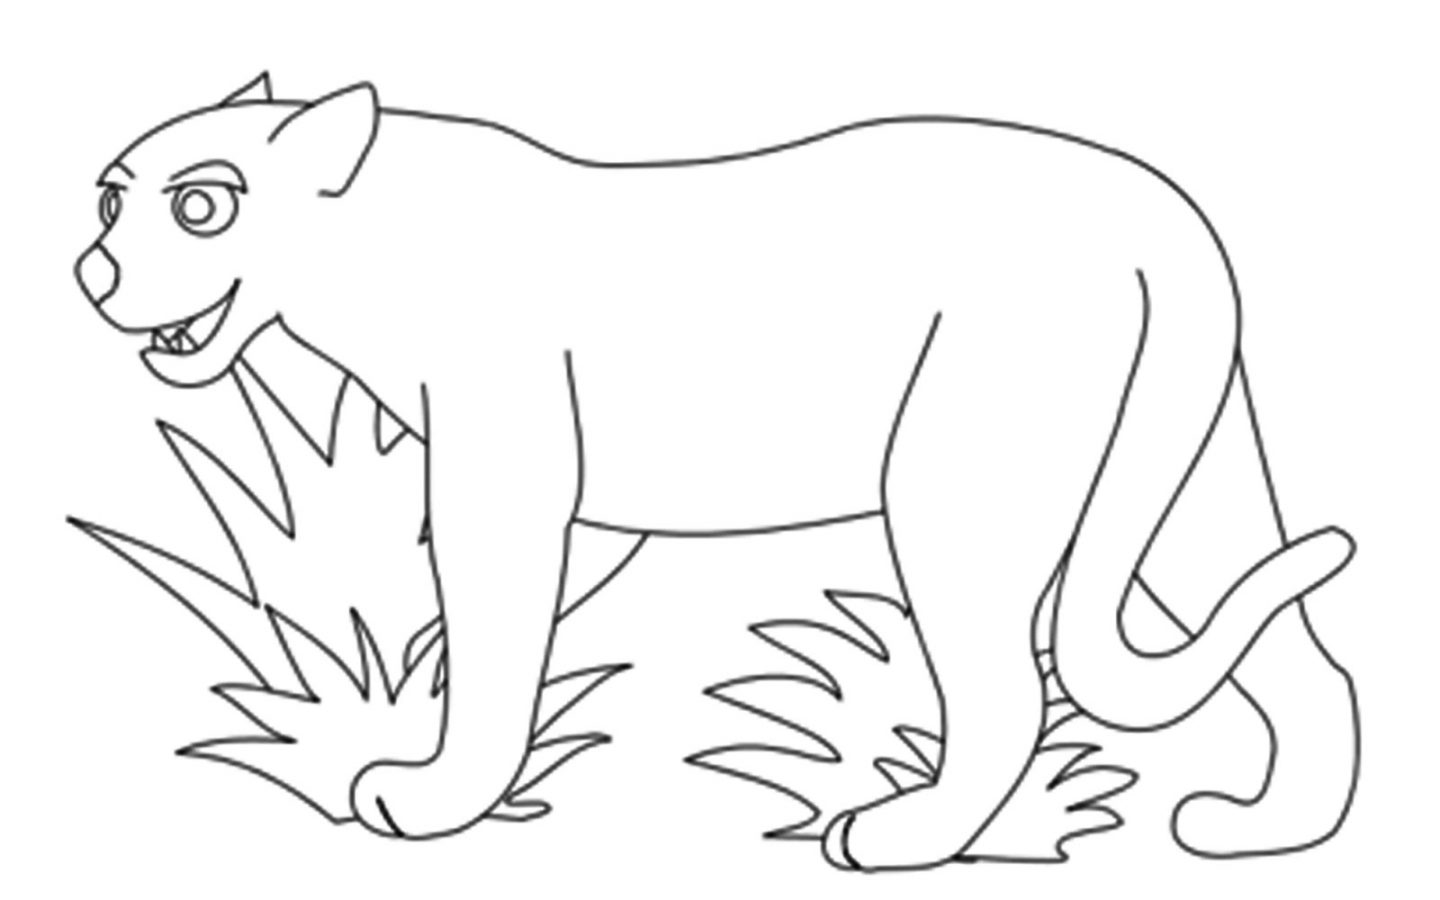 Jacksonville Jaguars Coloring Pages